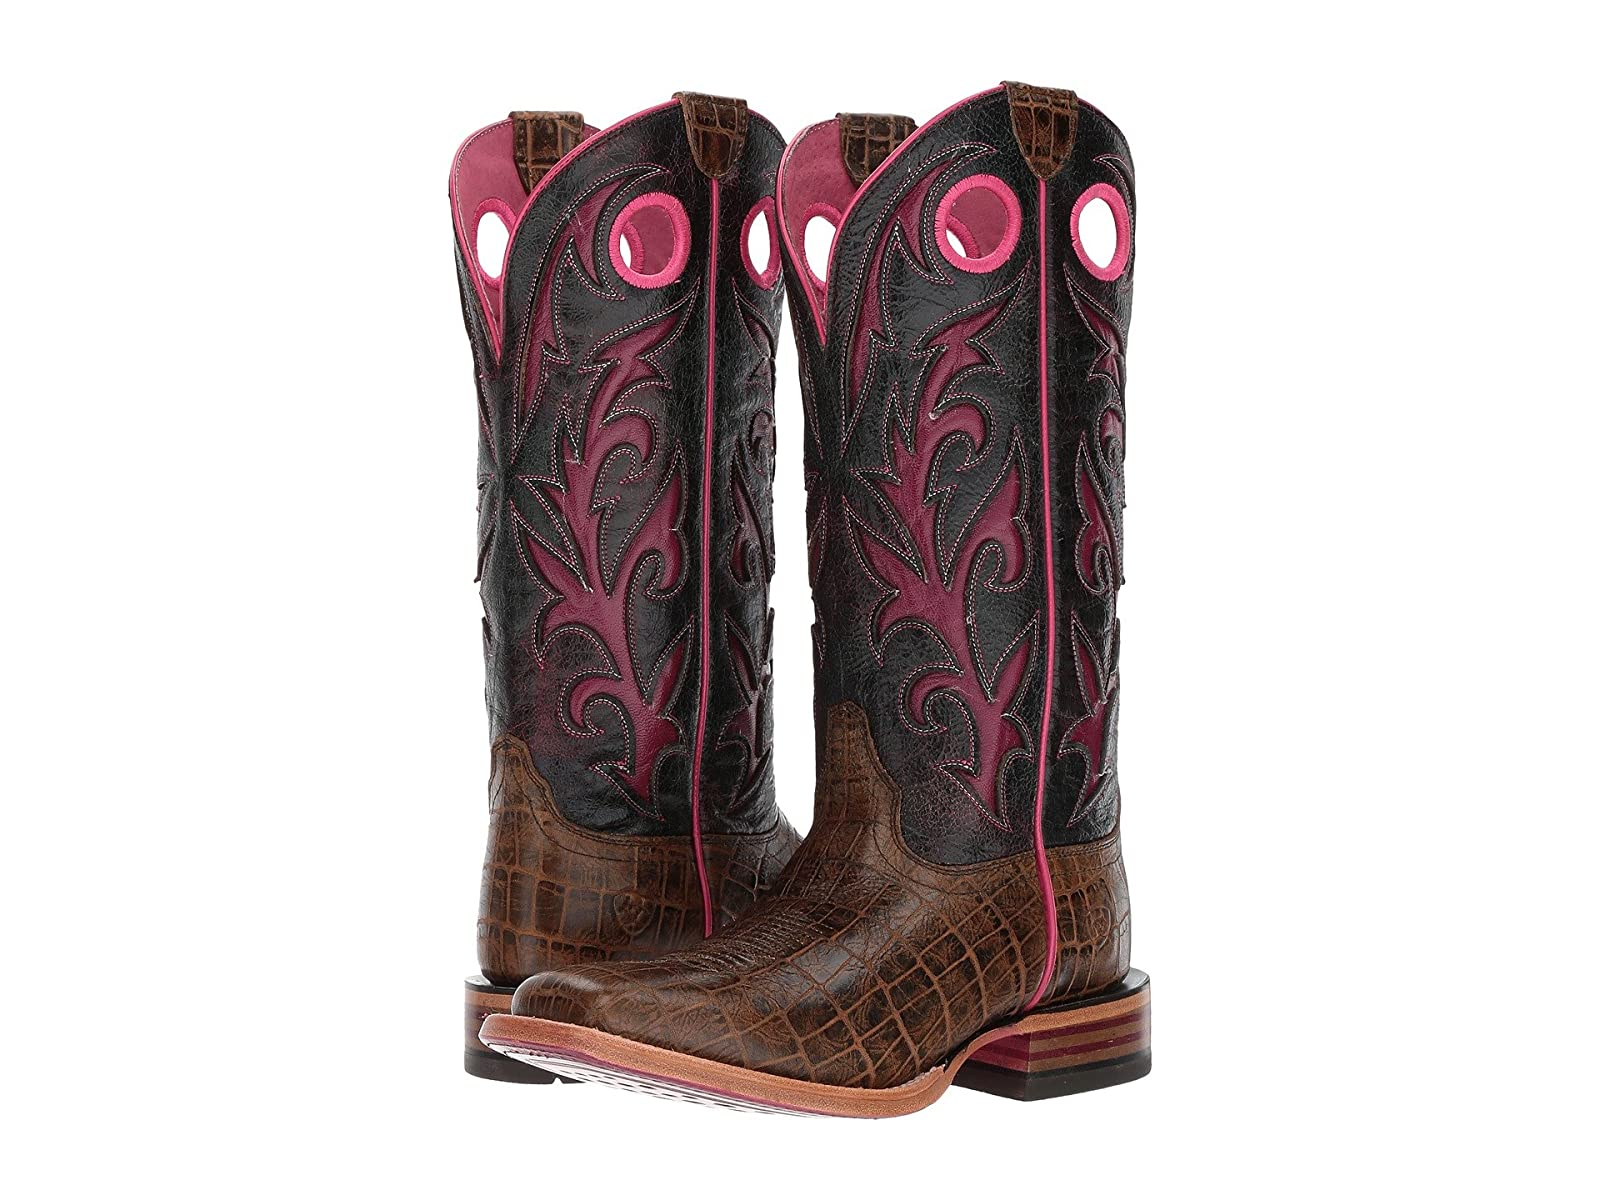 Ariat Chute OutCheap and distinctive eye-catching shoes